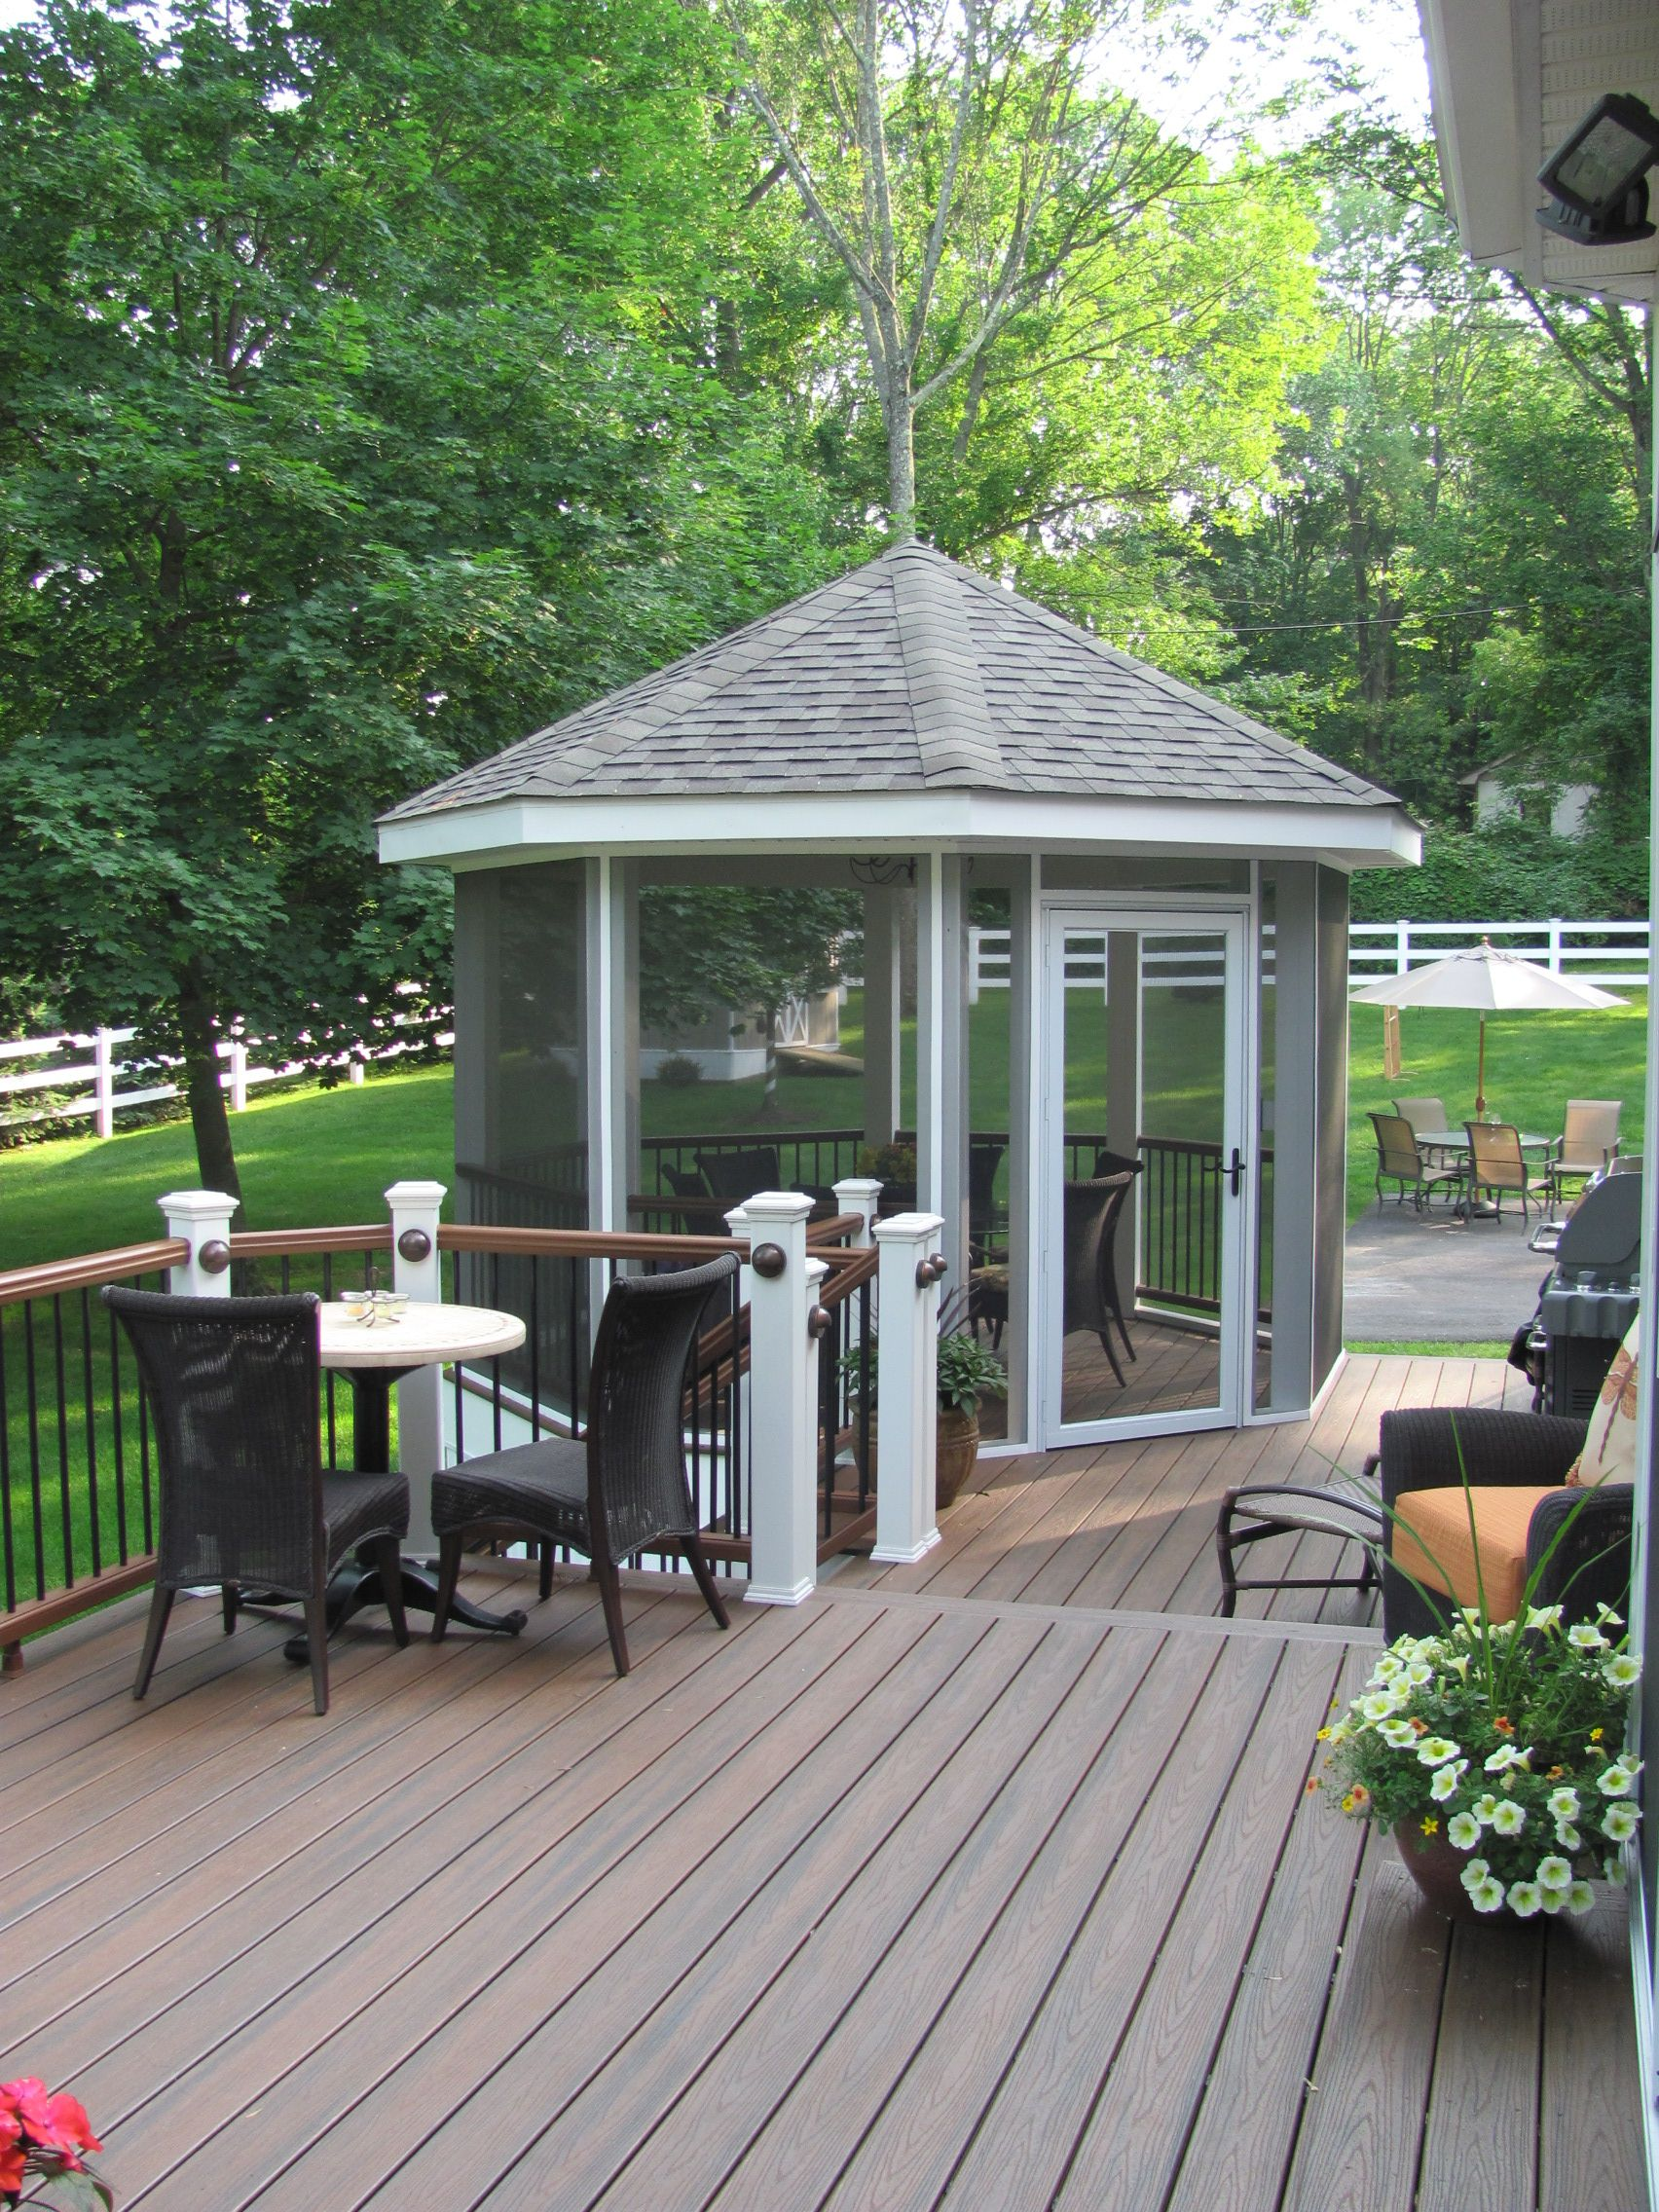 Multi Tiered Deck With Screened In Gazebo Provides Open Sunny Spaces And An Enclosed Shady Spot Too Backyard Gazebo Porch Design Screened Gazebo